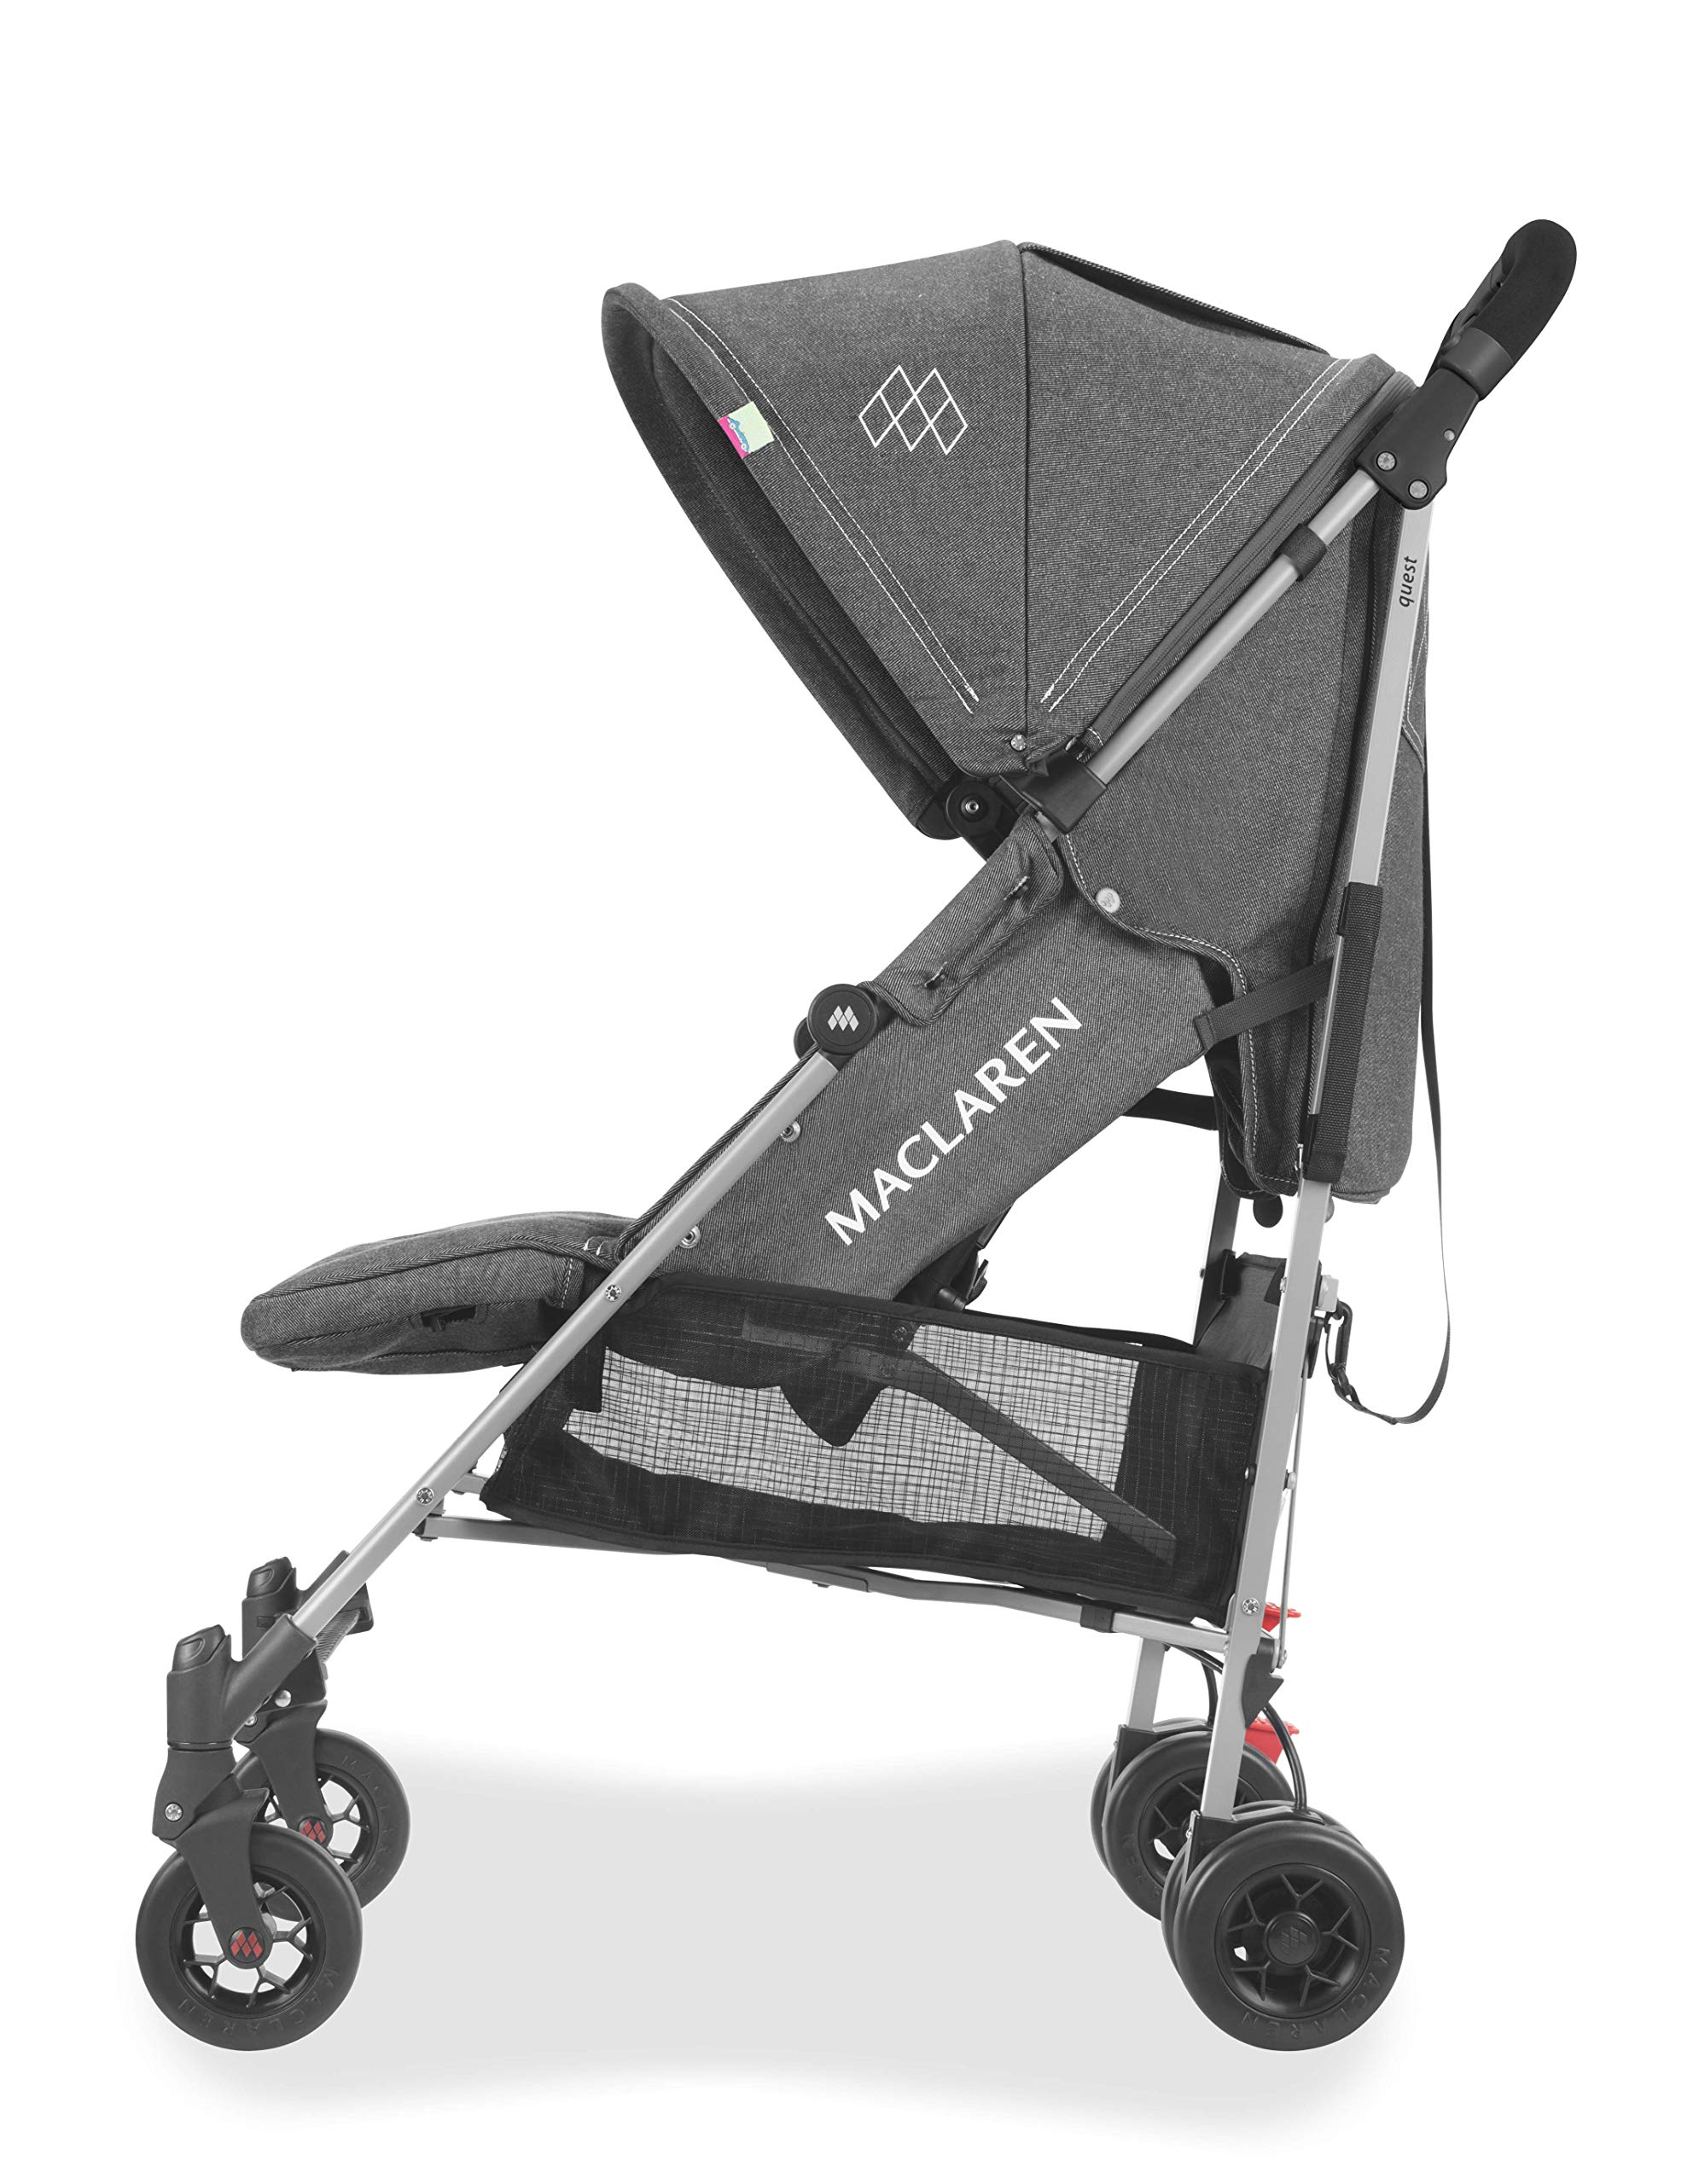 Maclaren Quest Arc Stroller- Ideal for Newborns up to 25kg with extendable UPF 50+/Waterproof Hood, Multi-Position seat and 4-Wheel Suspension. Maclaren Carrycot Compatible. Accessories in The Box Maclaren Lightweight and compact. ideal for newborns and children up to 25kg. you can do it all with one-hand- open, close, push and adjust the seat, footrest and front safety lock Comfy and perfect for travel. the quest arc's padded seat reclines into 4 positions and converts into a new-born safety system. coupled with ultra light flat-free eva tires and all wheel suspension Smart product for active parents. compatible with the maclaren carrycot. all maclaren strollers have waterproof/ upf 50+ hoods to protect from the elements and machine washable seats to keep tidy 11